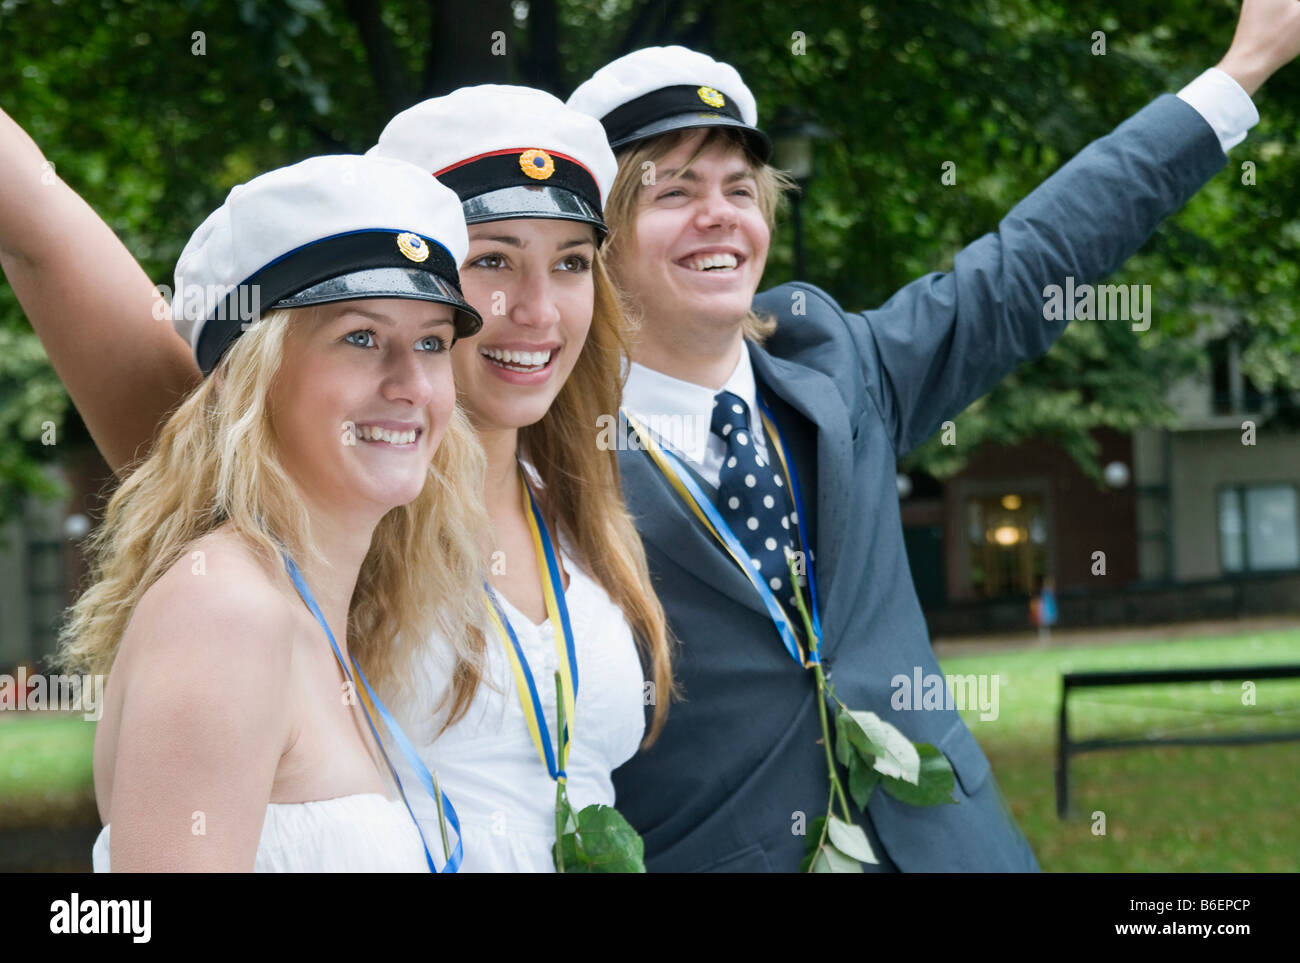 Students with raised arms - Stock Image